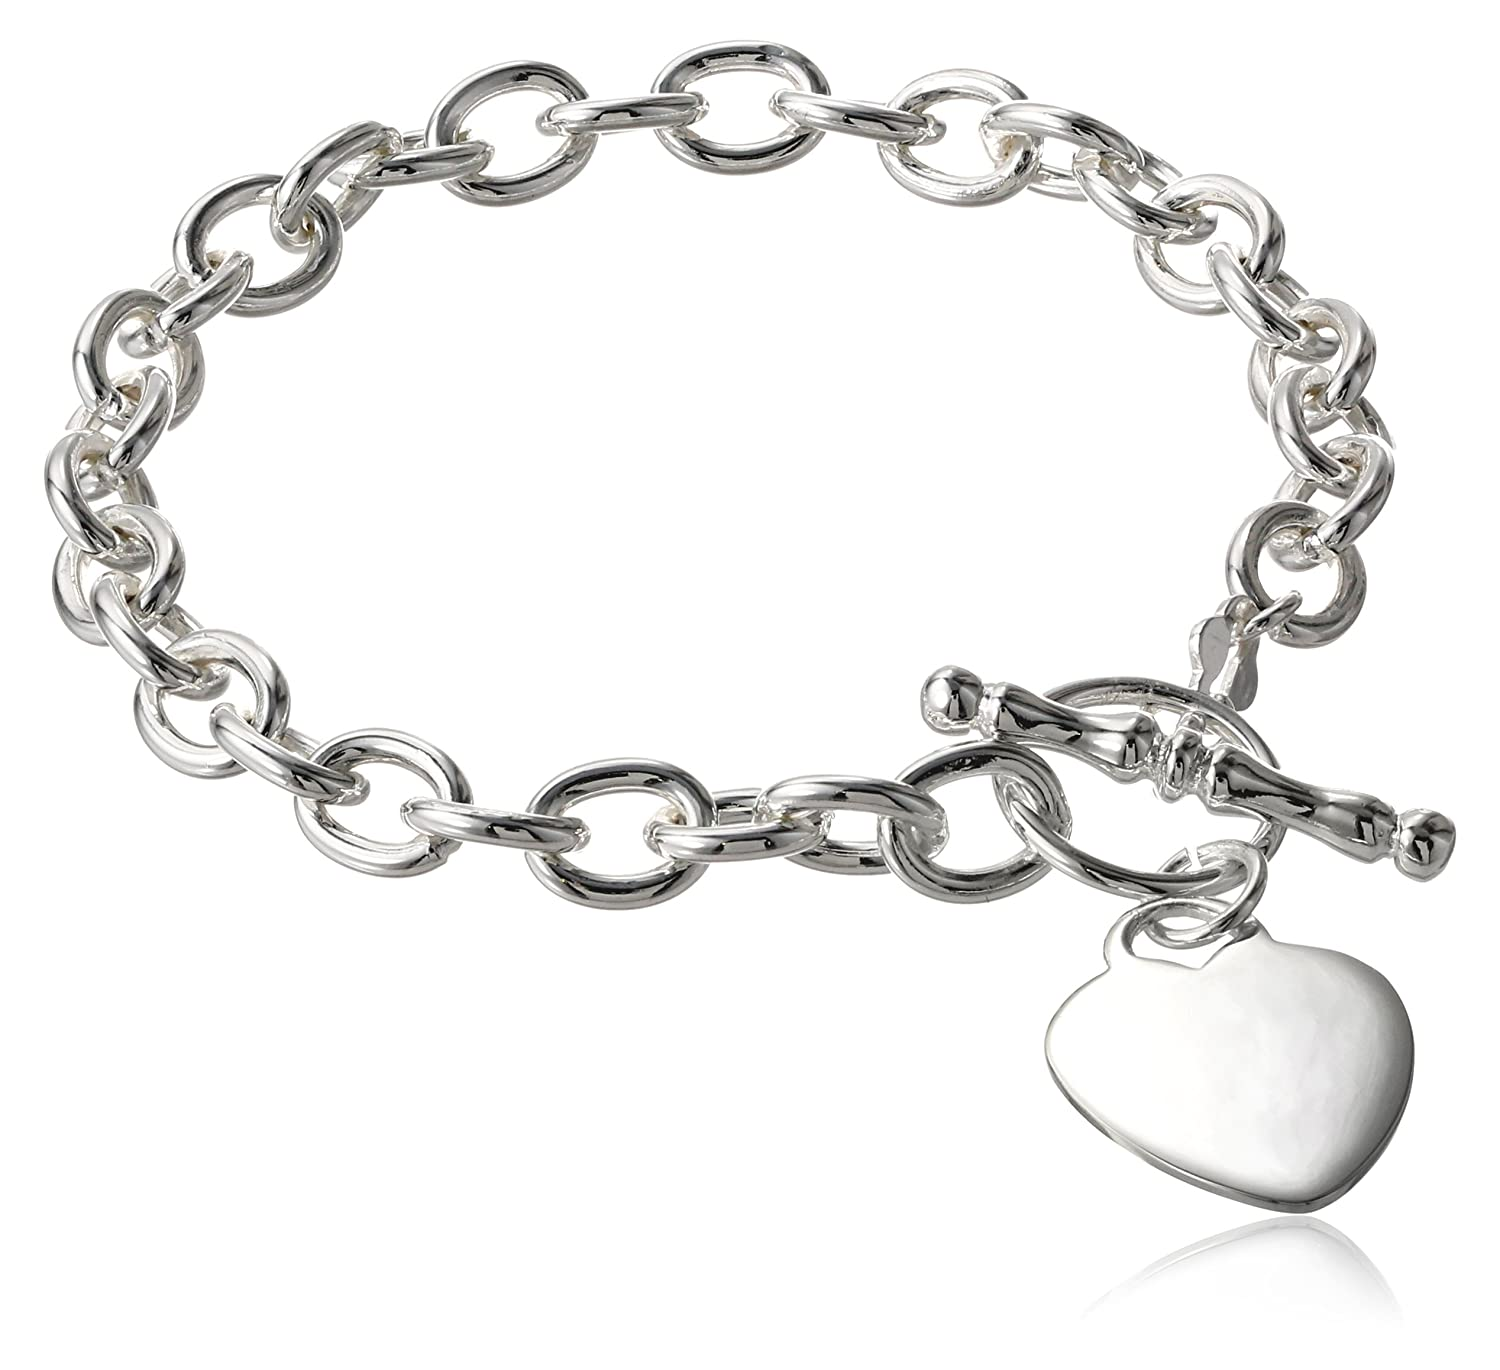 Sterling Silver Heart Tag Toggle Bracelet, 7.5 7.5 Amazon Collection BR4466-7